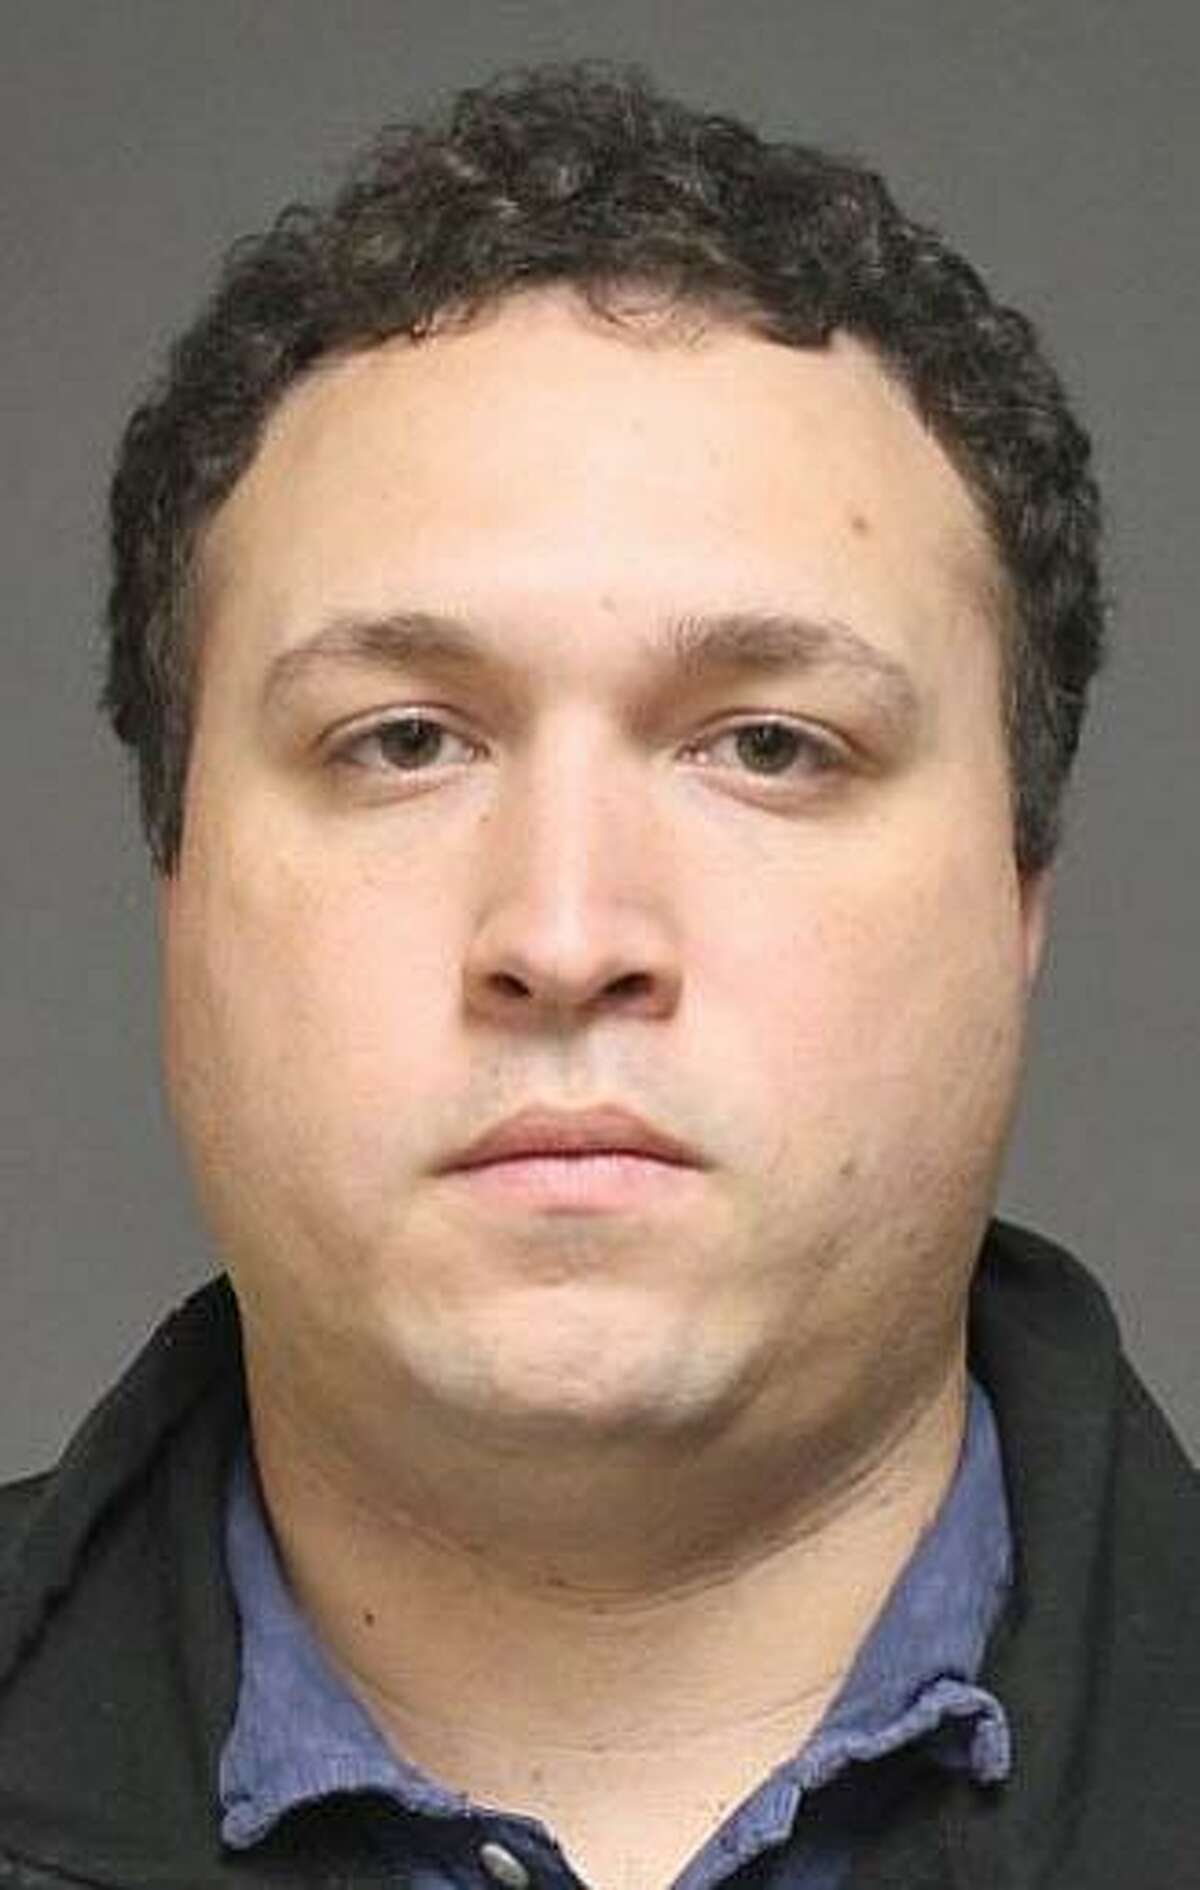 David Sharpe, 29, of Fairfield, was charged with public indecency and breach of peace. Sharp, a girl's soccer coach at Staples High School in Westport, resigned that position after speaking with Fairfield detectives.